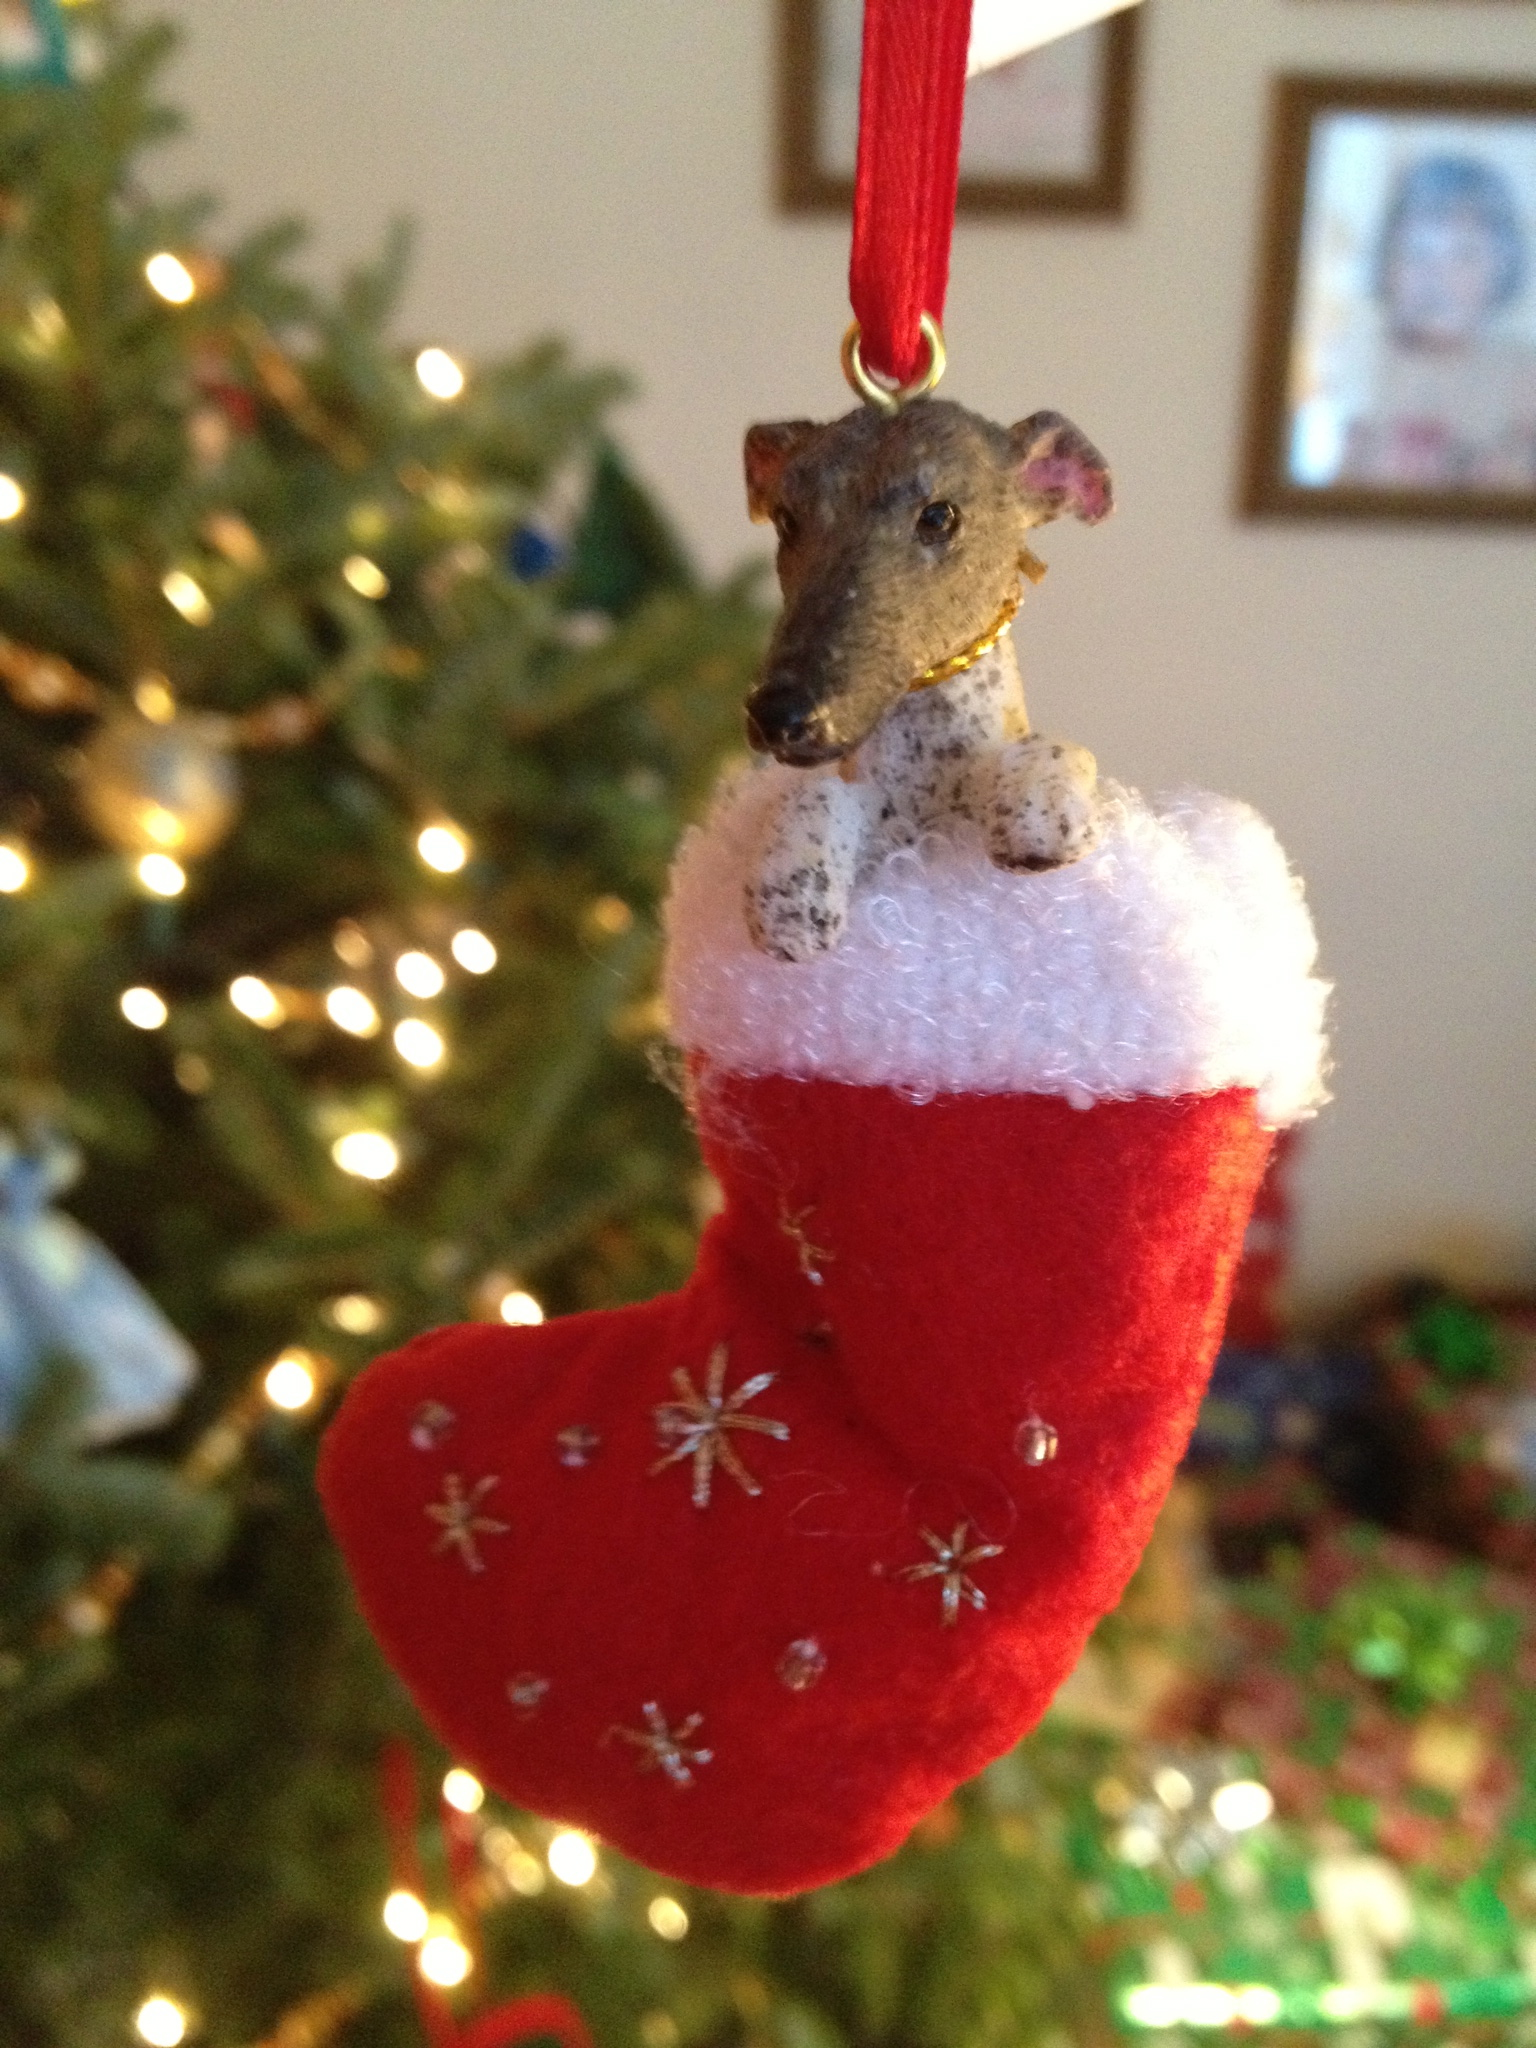 12:25-christmas-day-greyhound-ornament